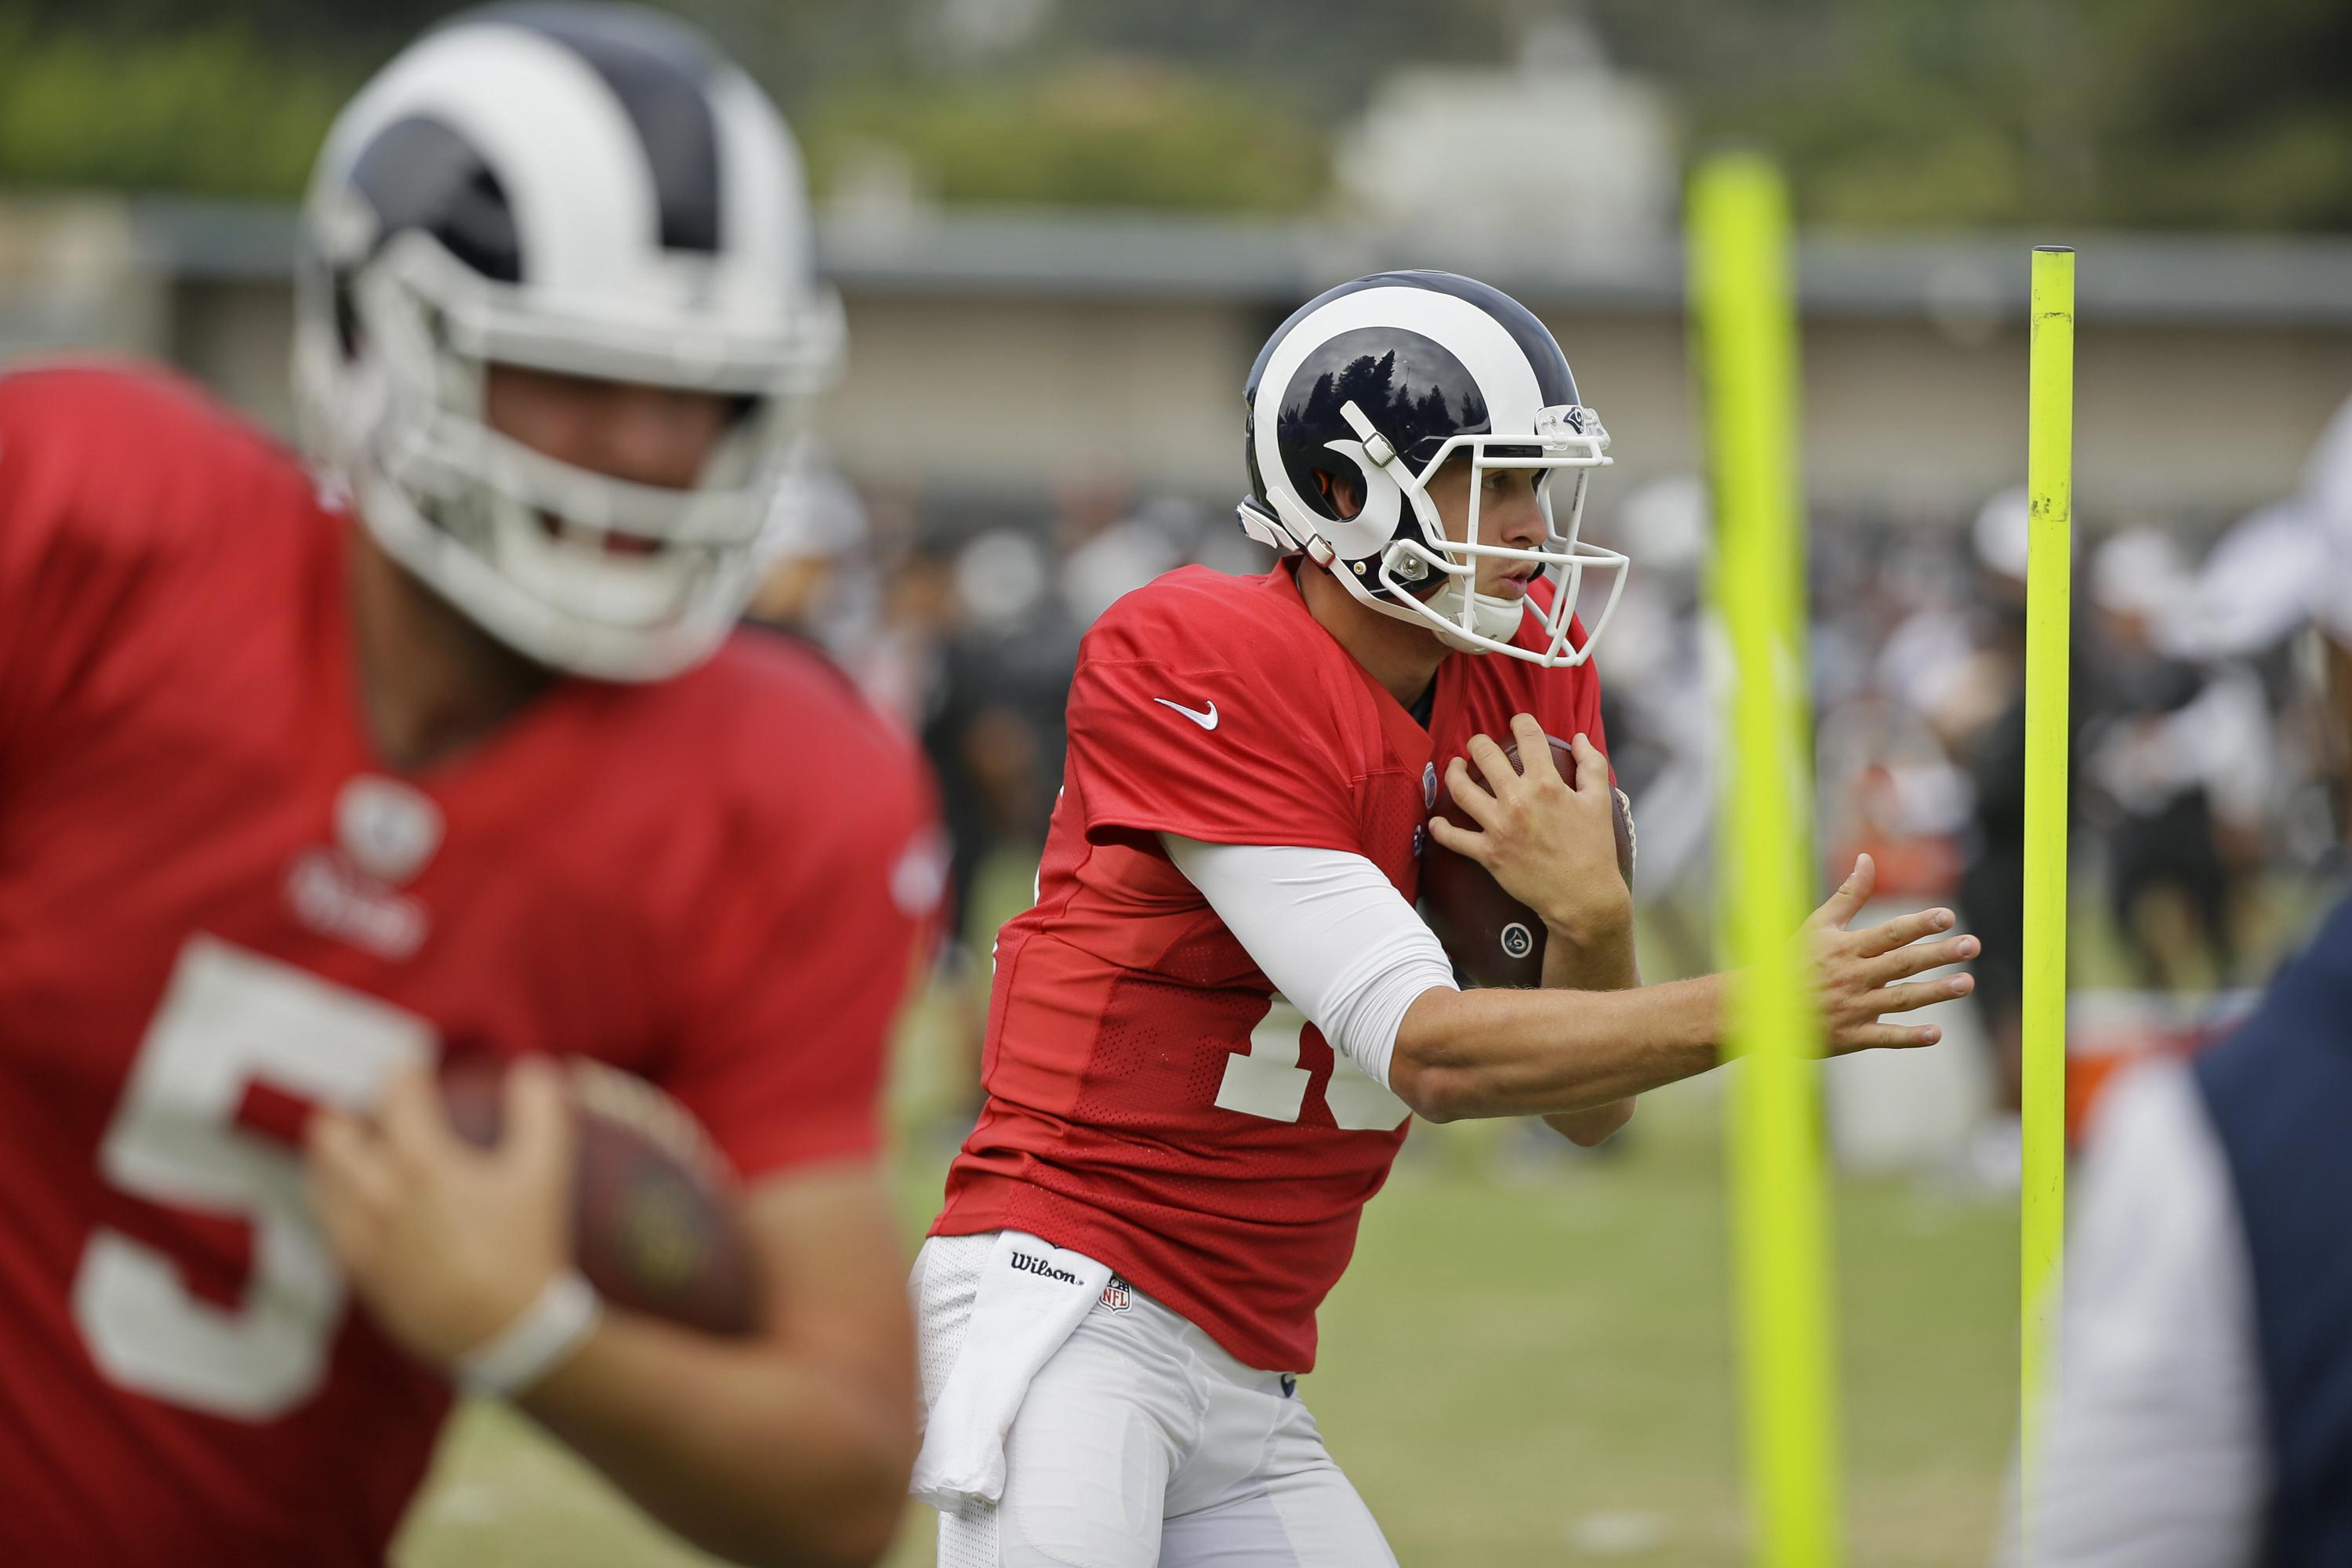 Goff happy with Rams' work in joint practice with Raiders